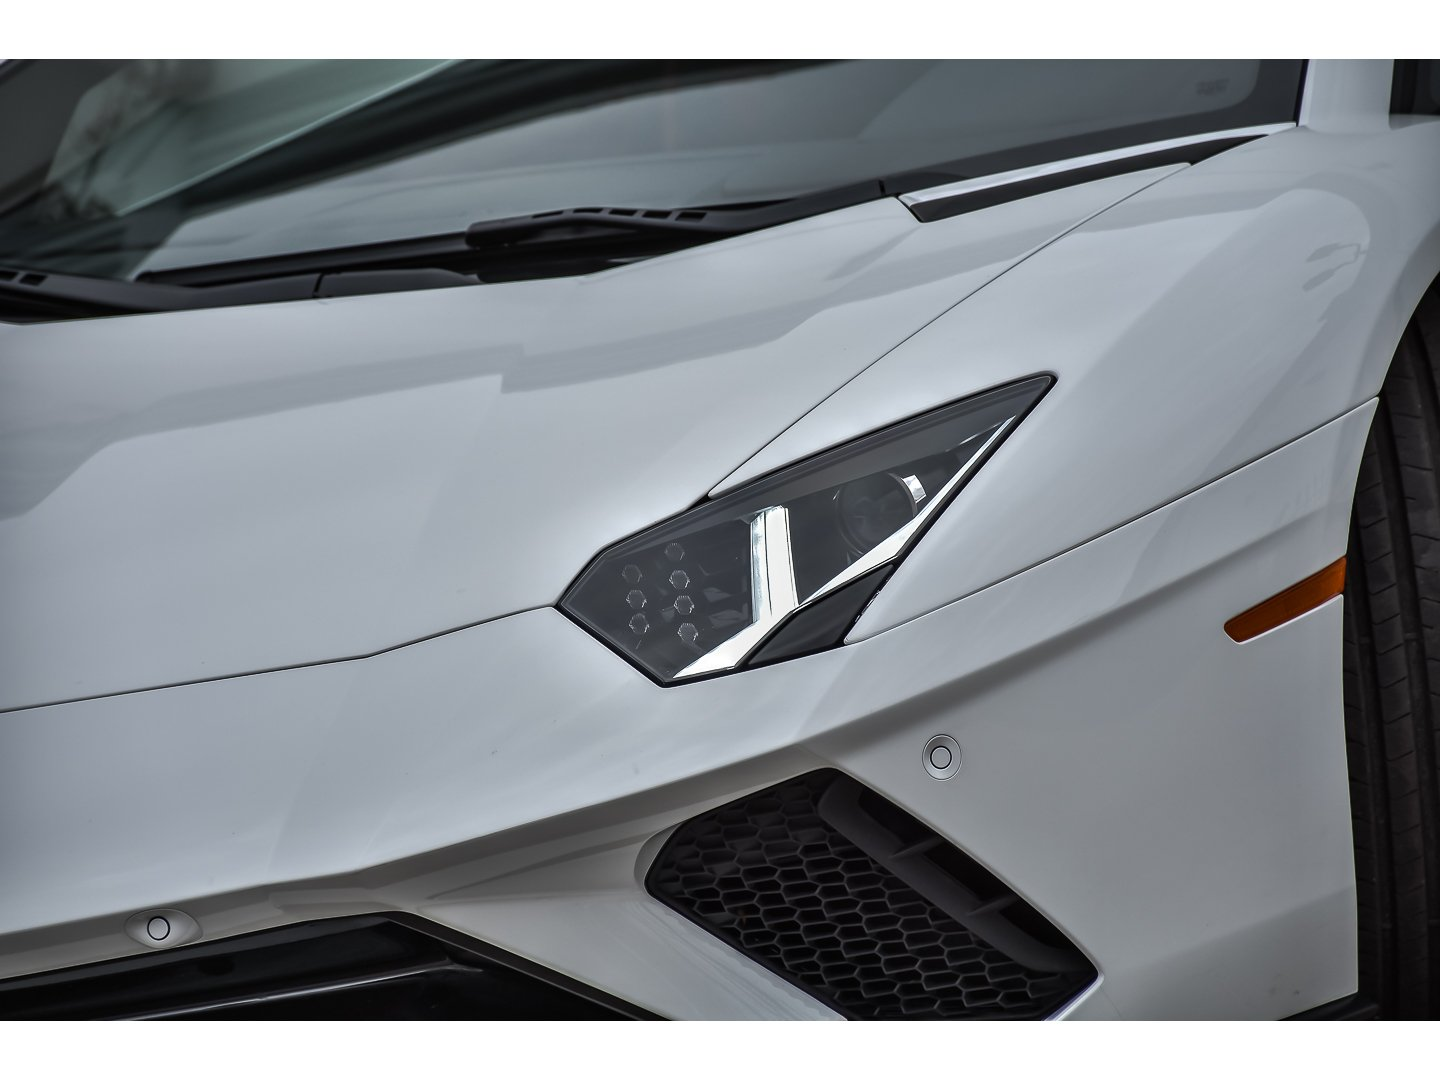 Pre Owned 2018 Lamborghini Aventador S Lp 700 4 2dr Car In Downers